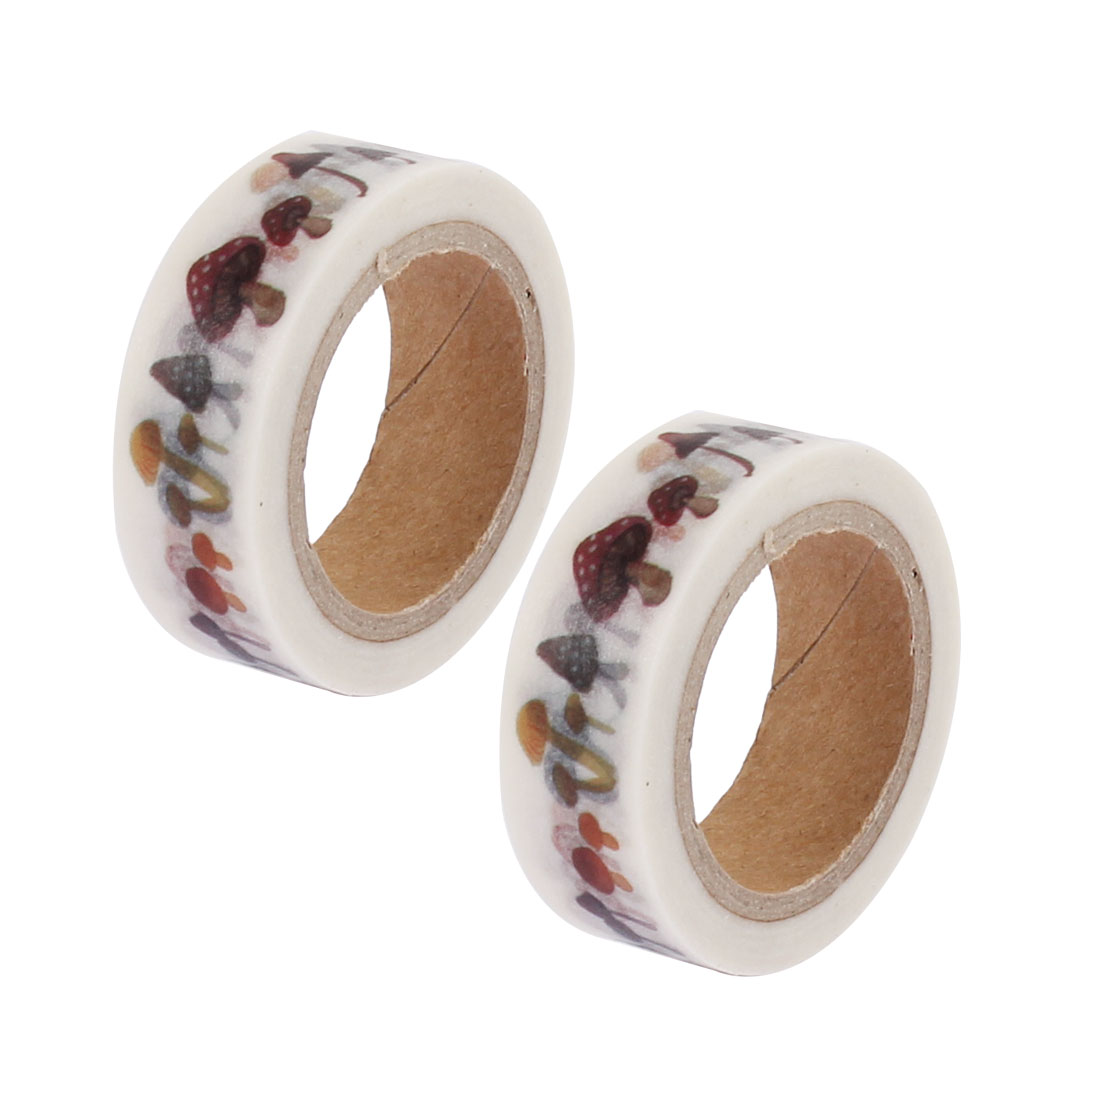 2 Pcs Mushroom Pattern Self Adhesive Decorative Tape Sellotape